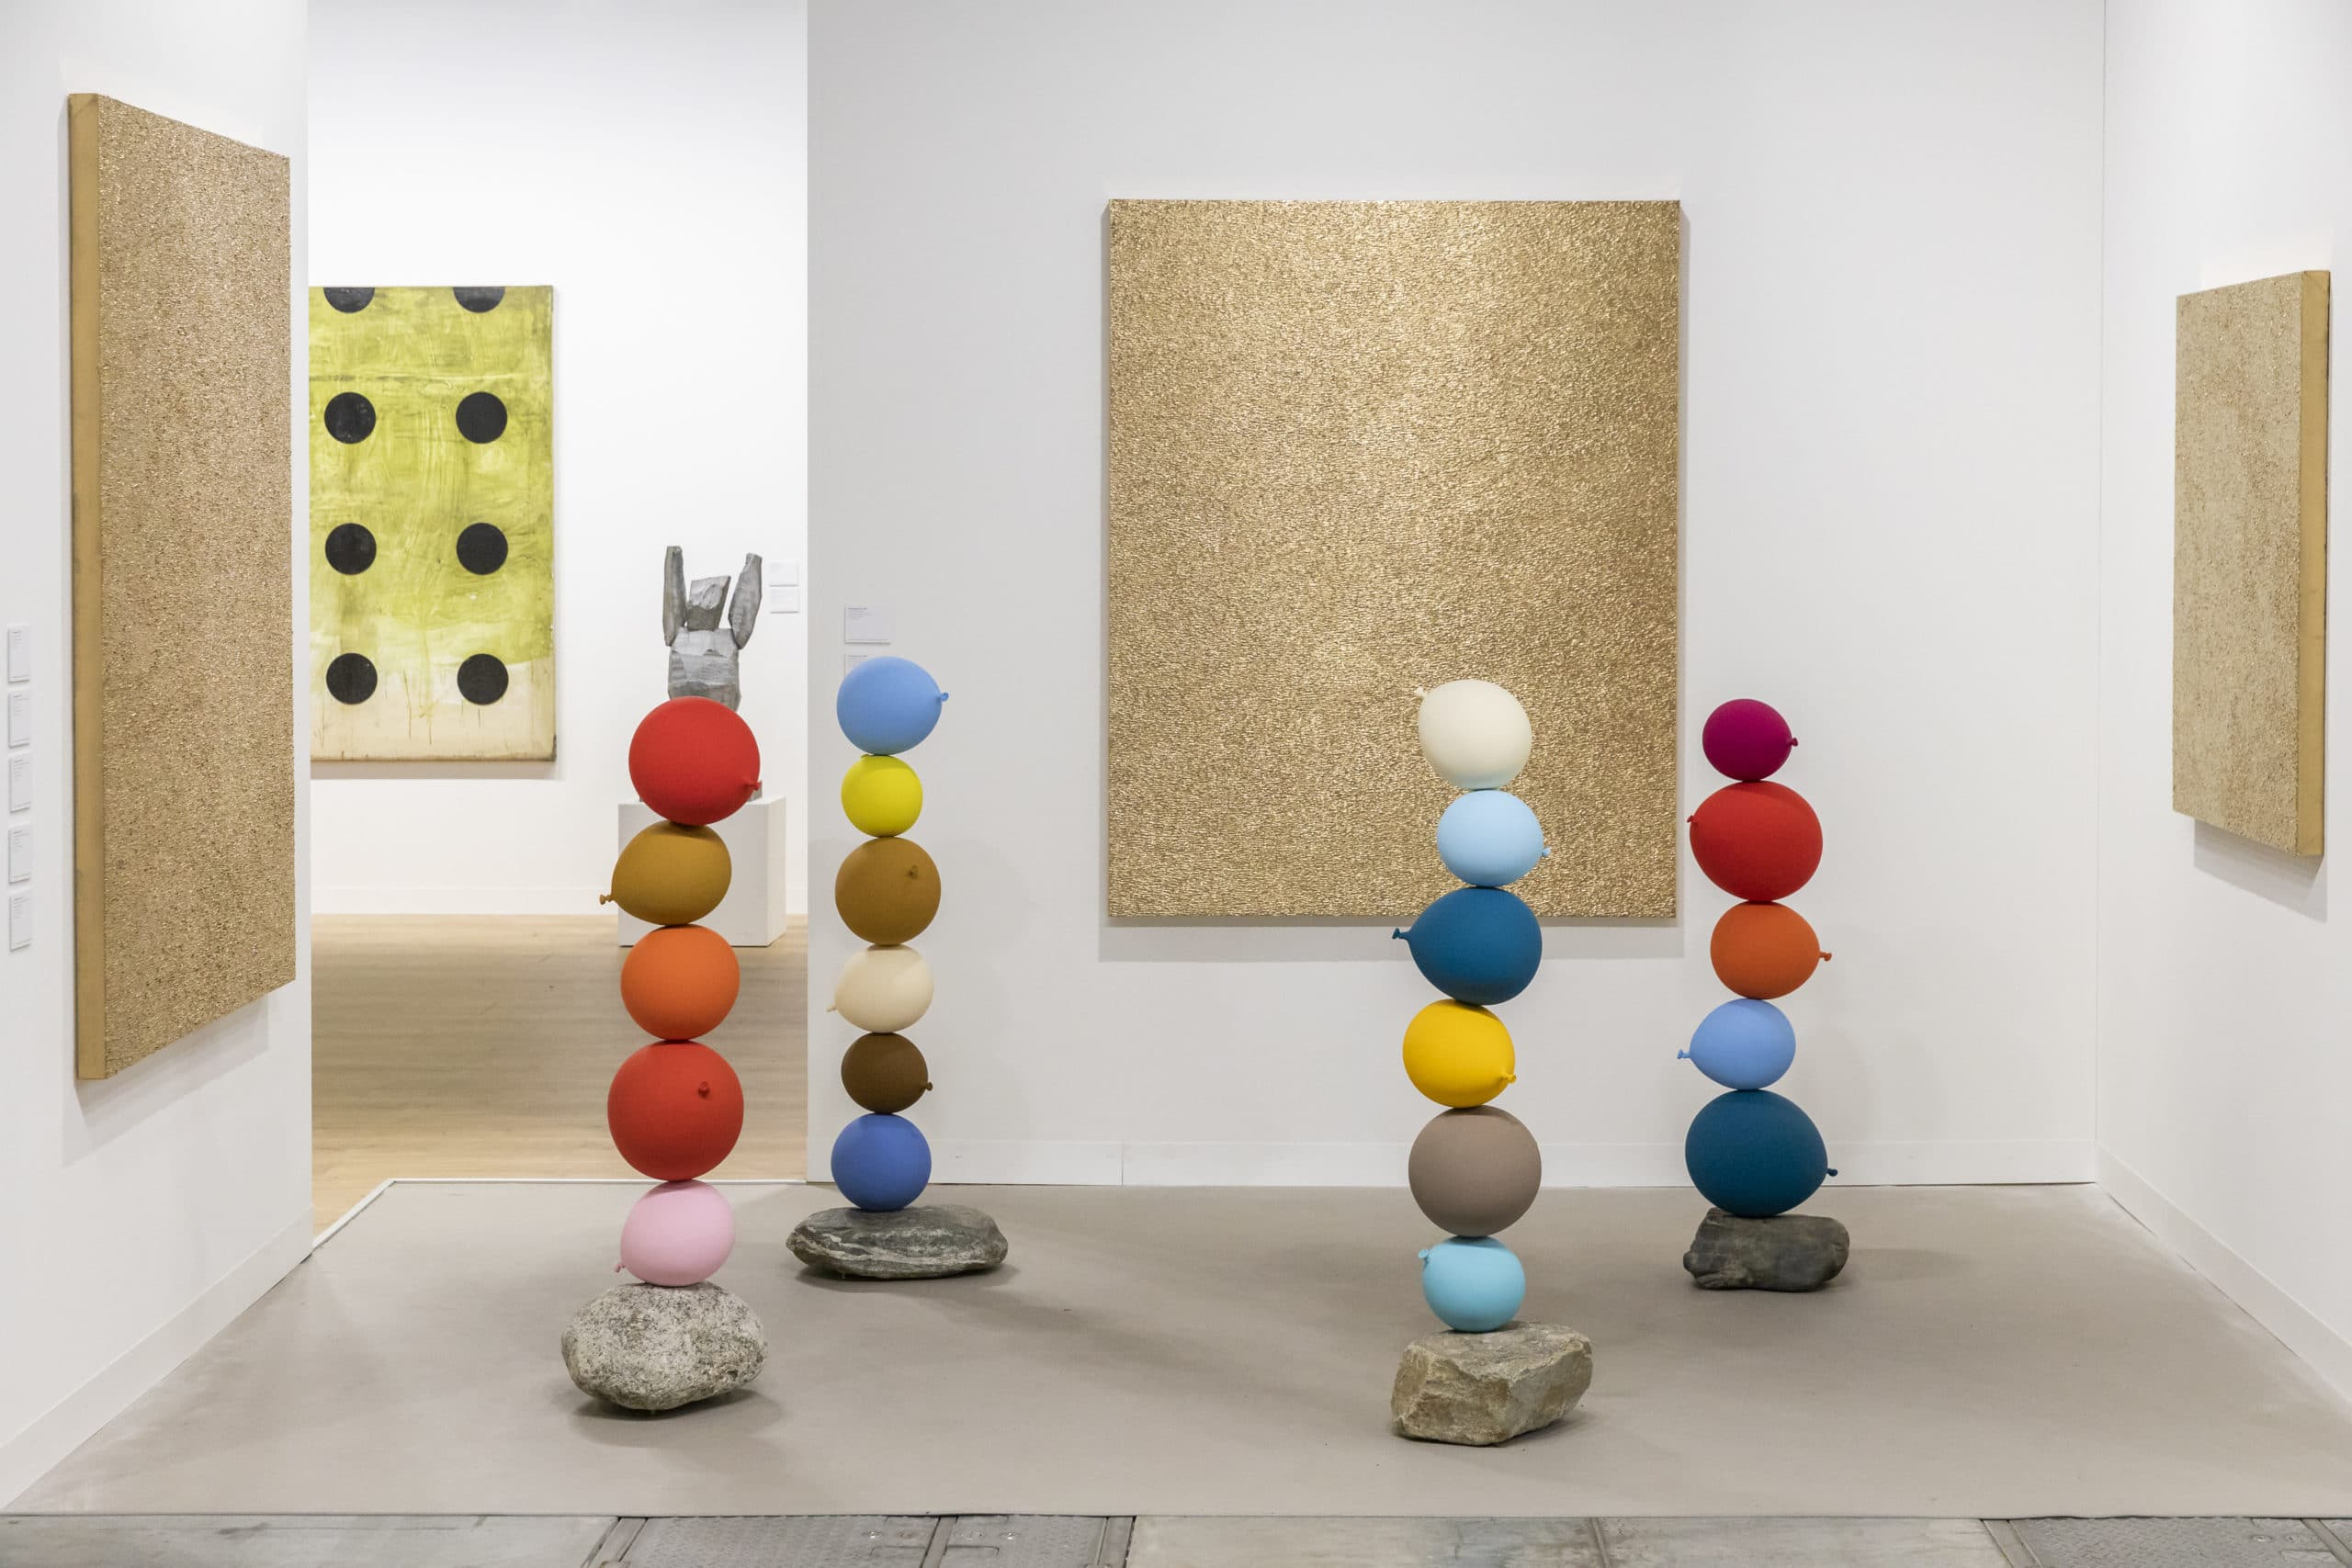 Interior view of art gallery in Miami. Includes 4 colored rock structures surrounded by gold artwork and a white wall.